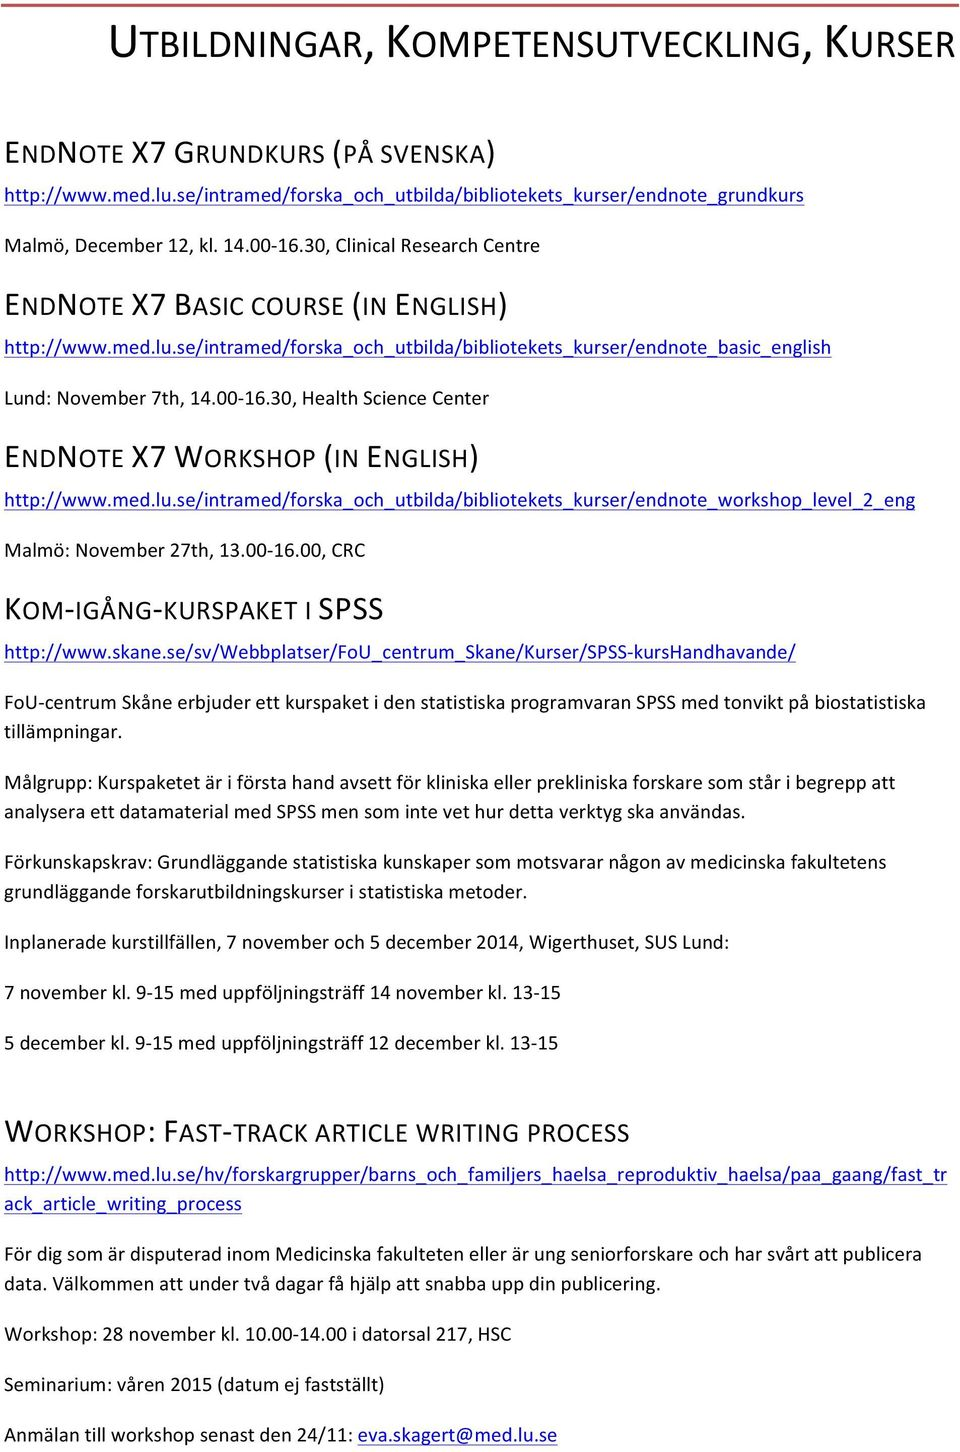 30, Health Science Center ENDNOTE X7 WORKSHOP (IN ENGLISH) http://www.med.lu.se/intramed/forska_och_utbilda/bibliotekets_kurser/endnote_workshop_level_2_eng Malmö: November 27th, 13.00-16.